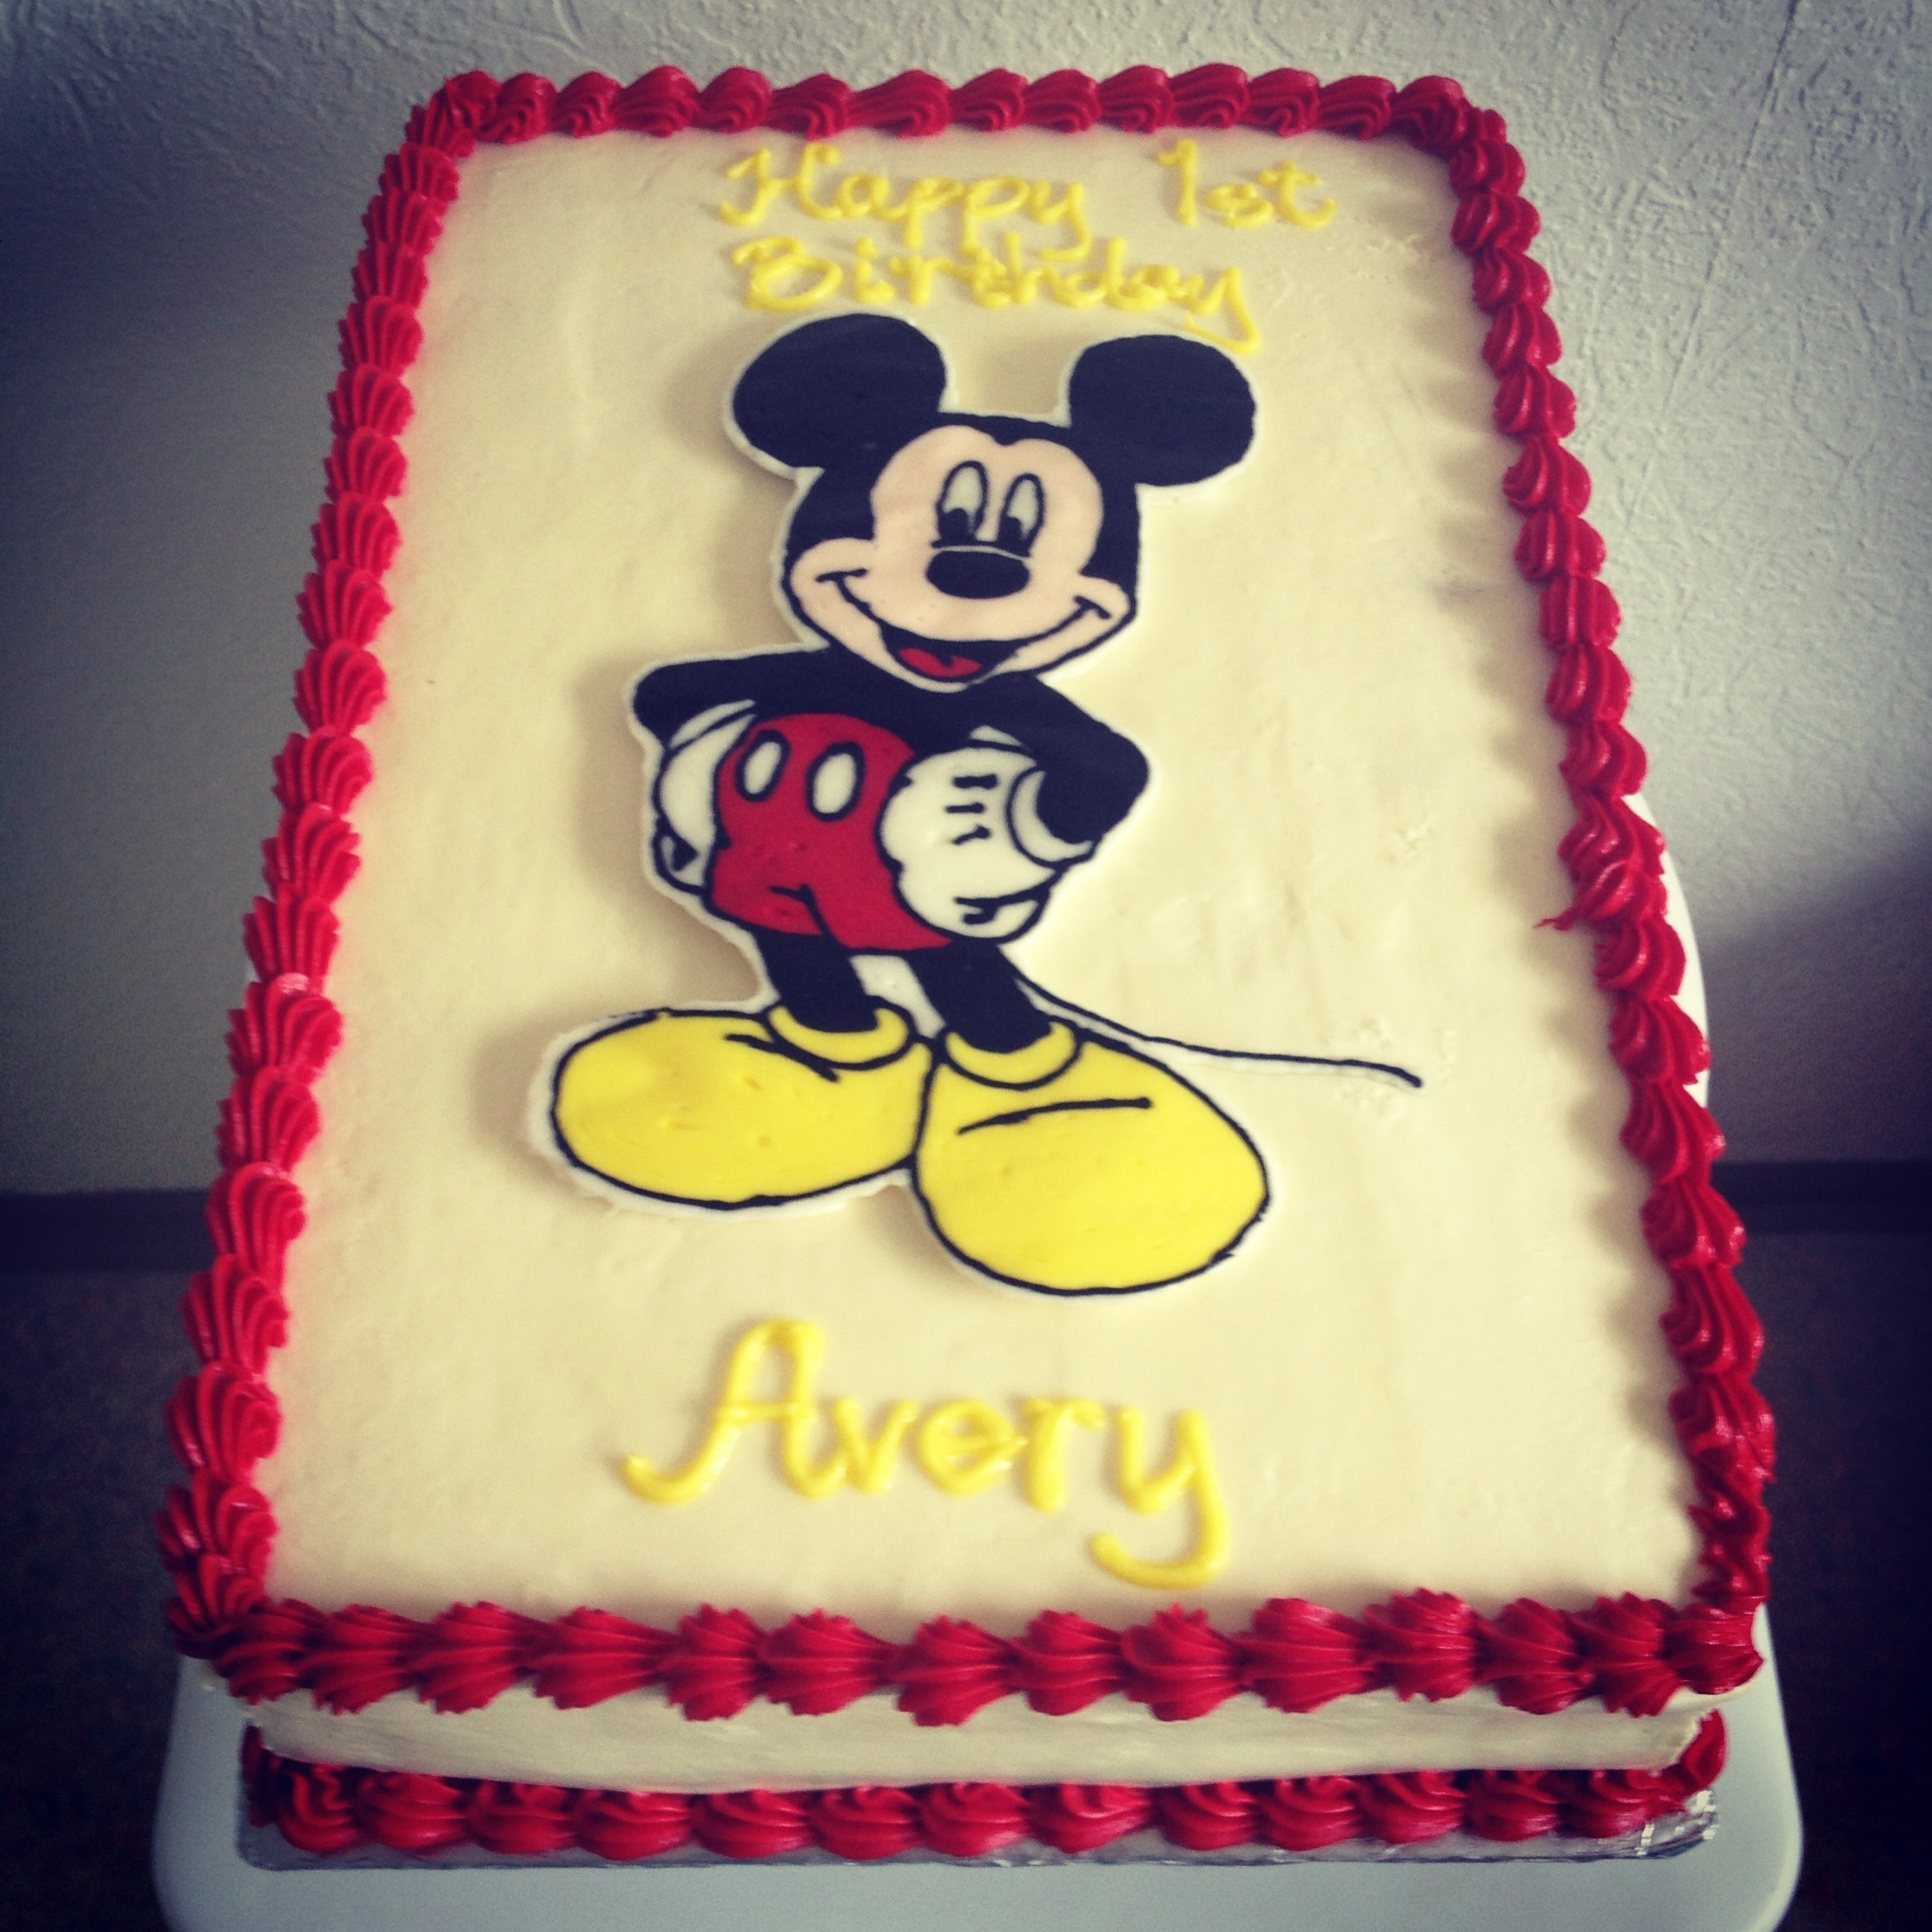 Mickey Mouse Cream Cake Images : Mickey Mouse Cake twincupcakery